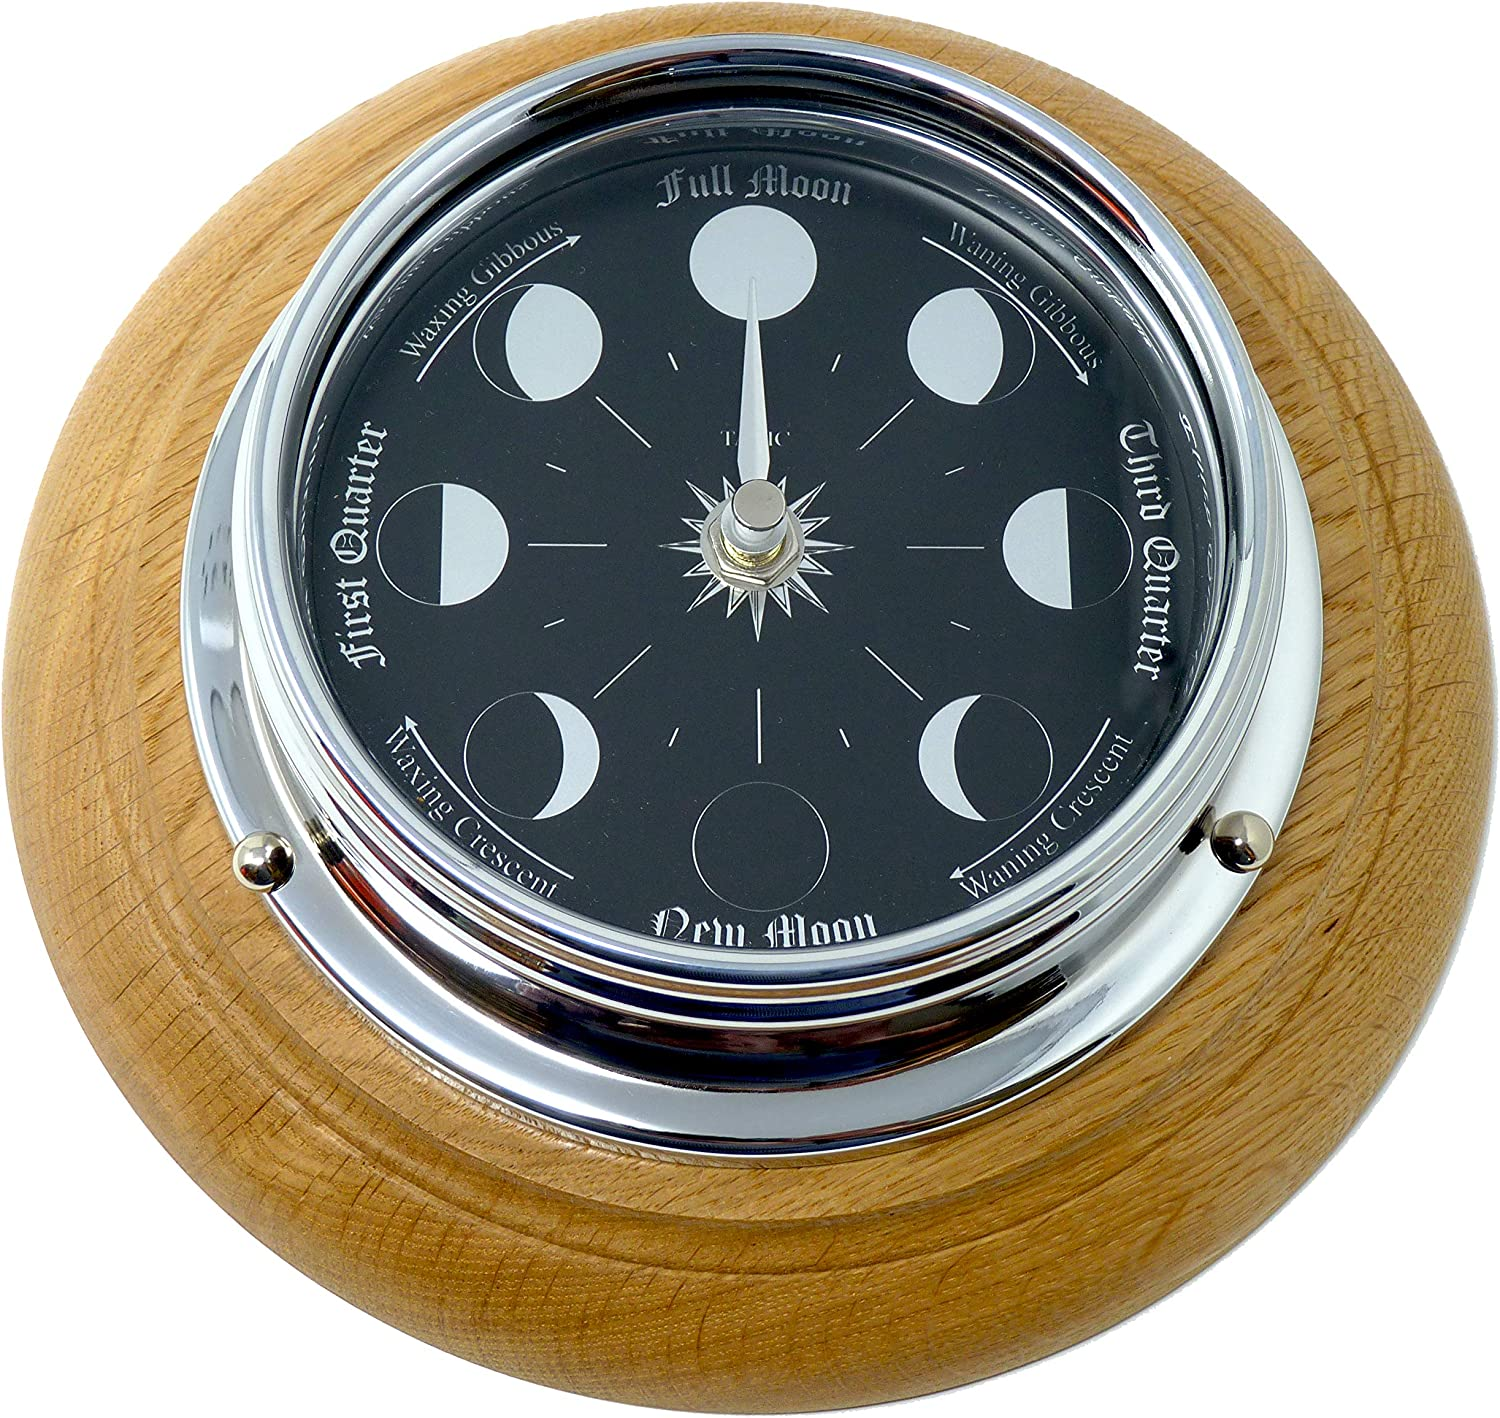 Tabic Price reduction Prestige Chrome Moon Phase Don't miss the campaign Clock Mounted On an Oak English